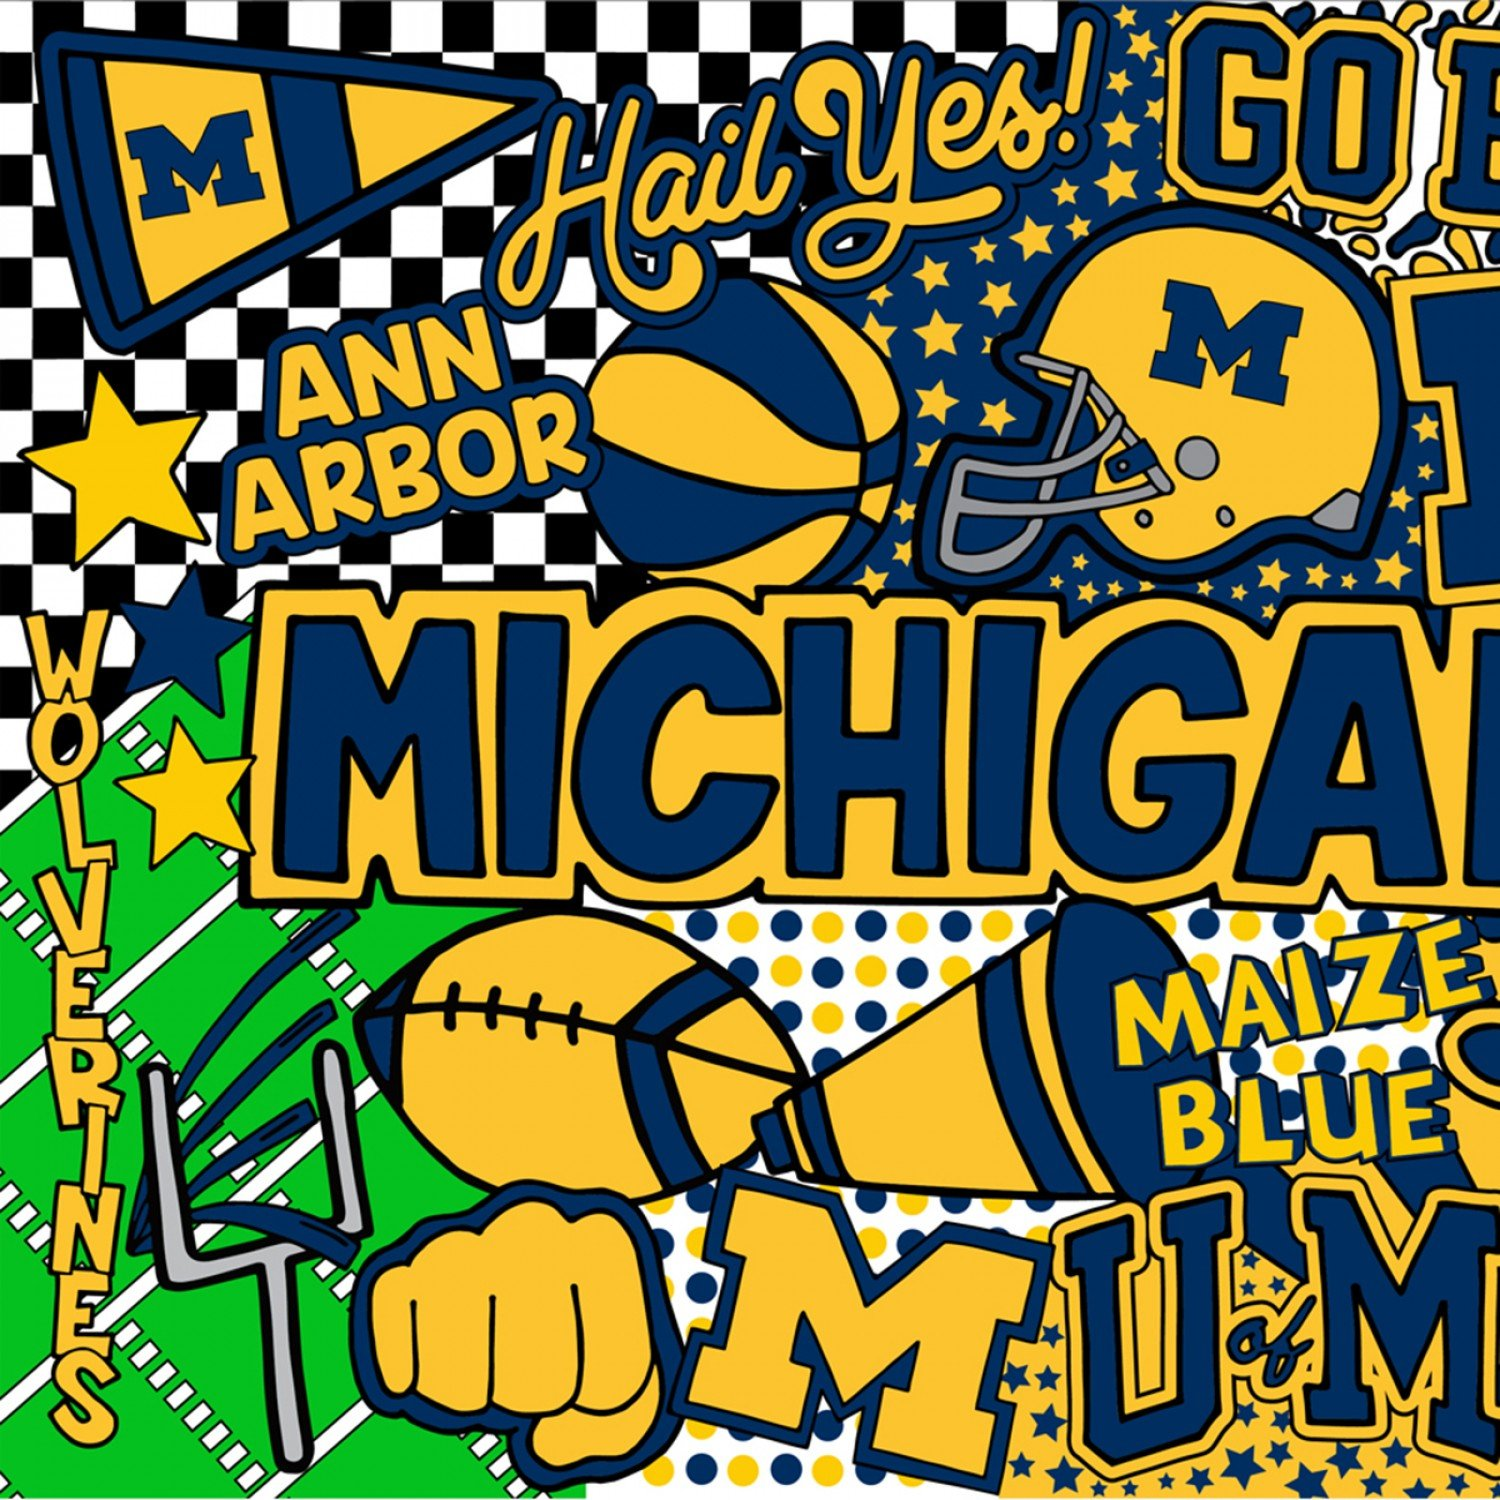 MICHIGAN WOLVERINES MCHG 1165